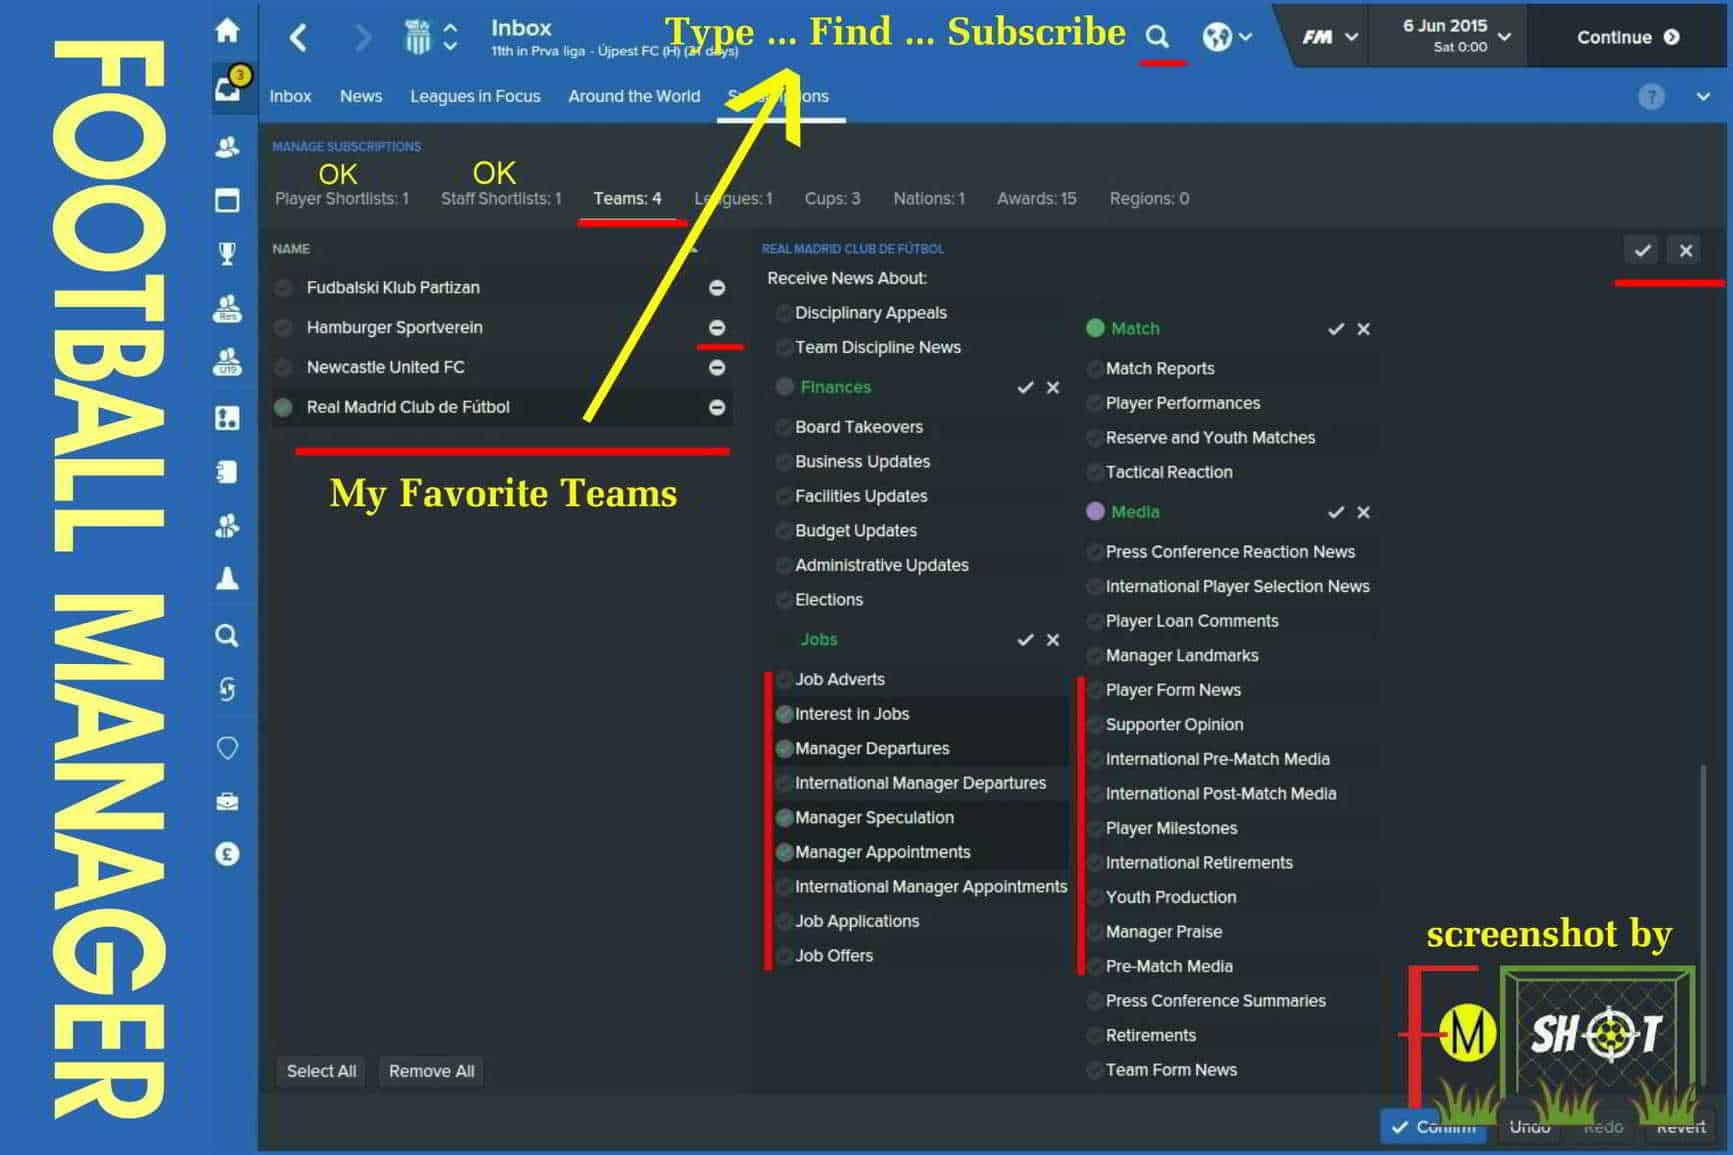 Subscriptions - Teams in FM 2016